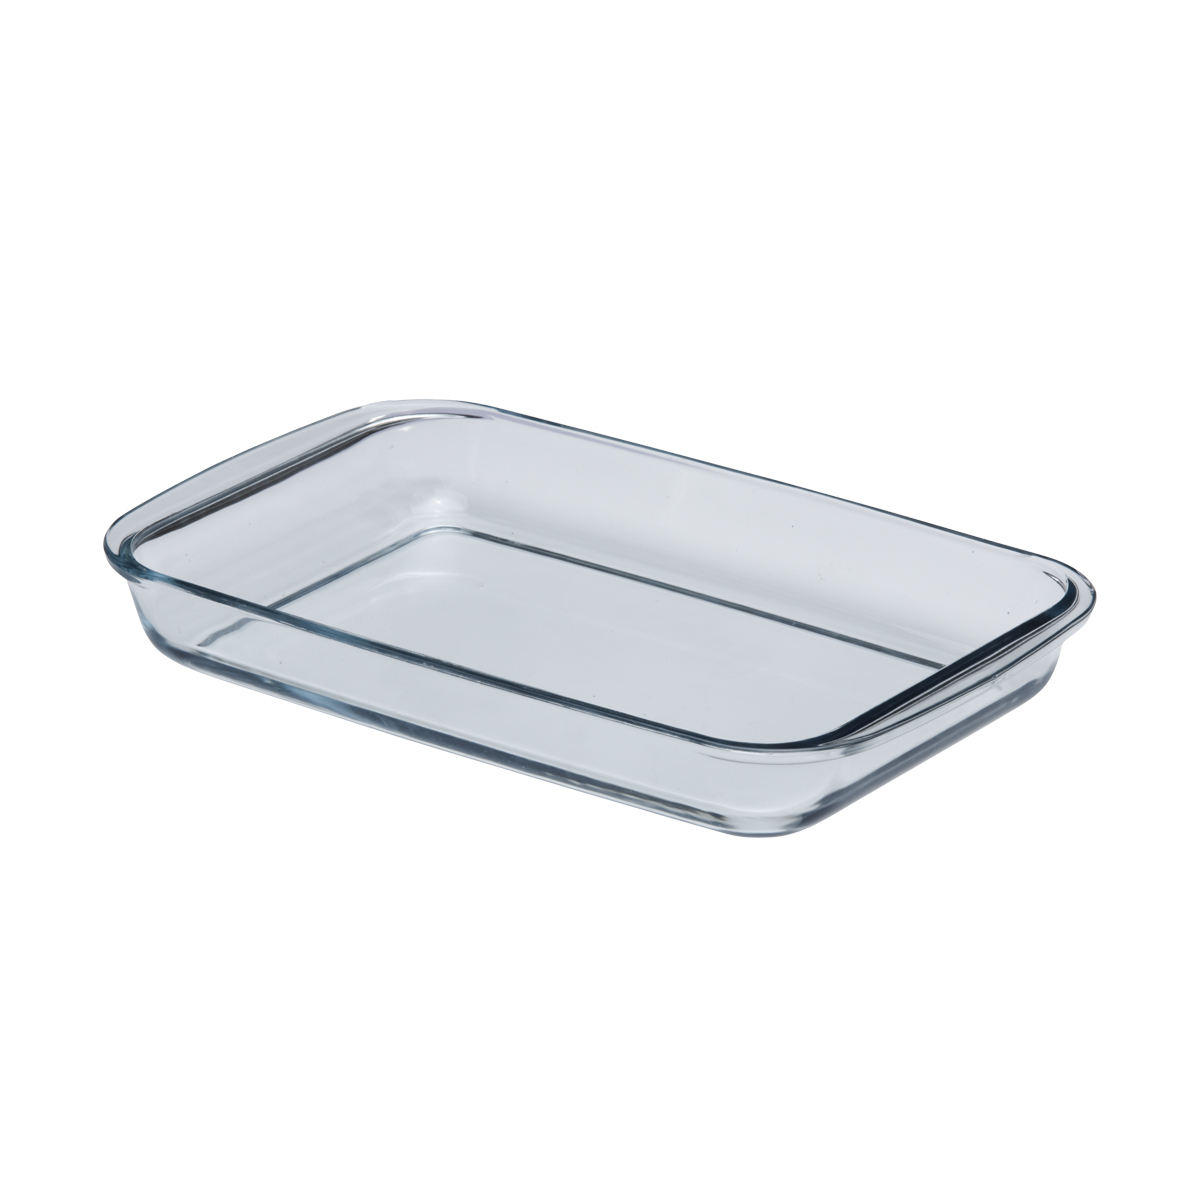 1 8l Glass Square Baking Dish With Images Baked Dishes